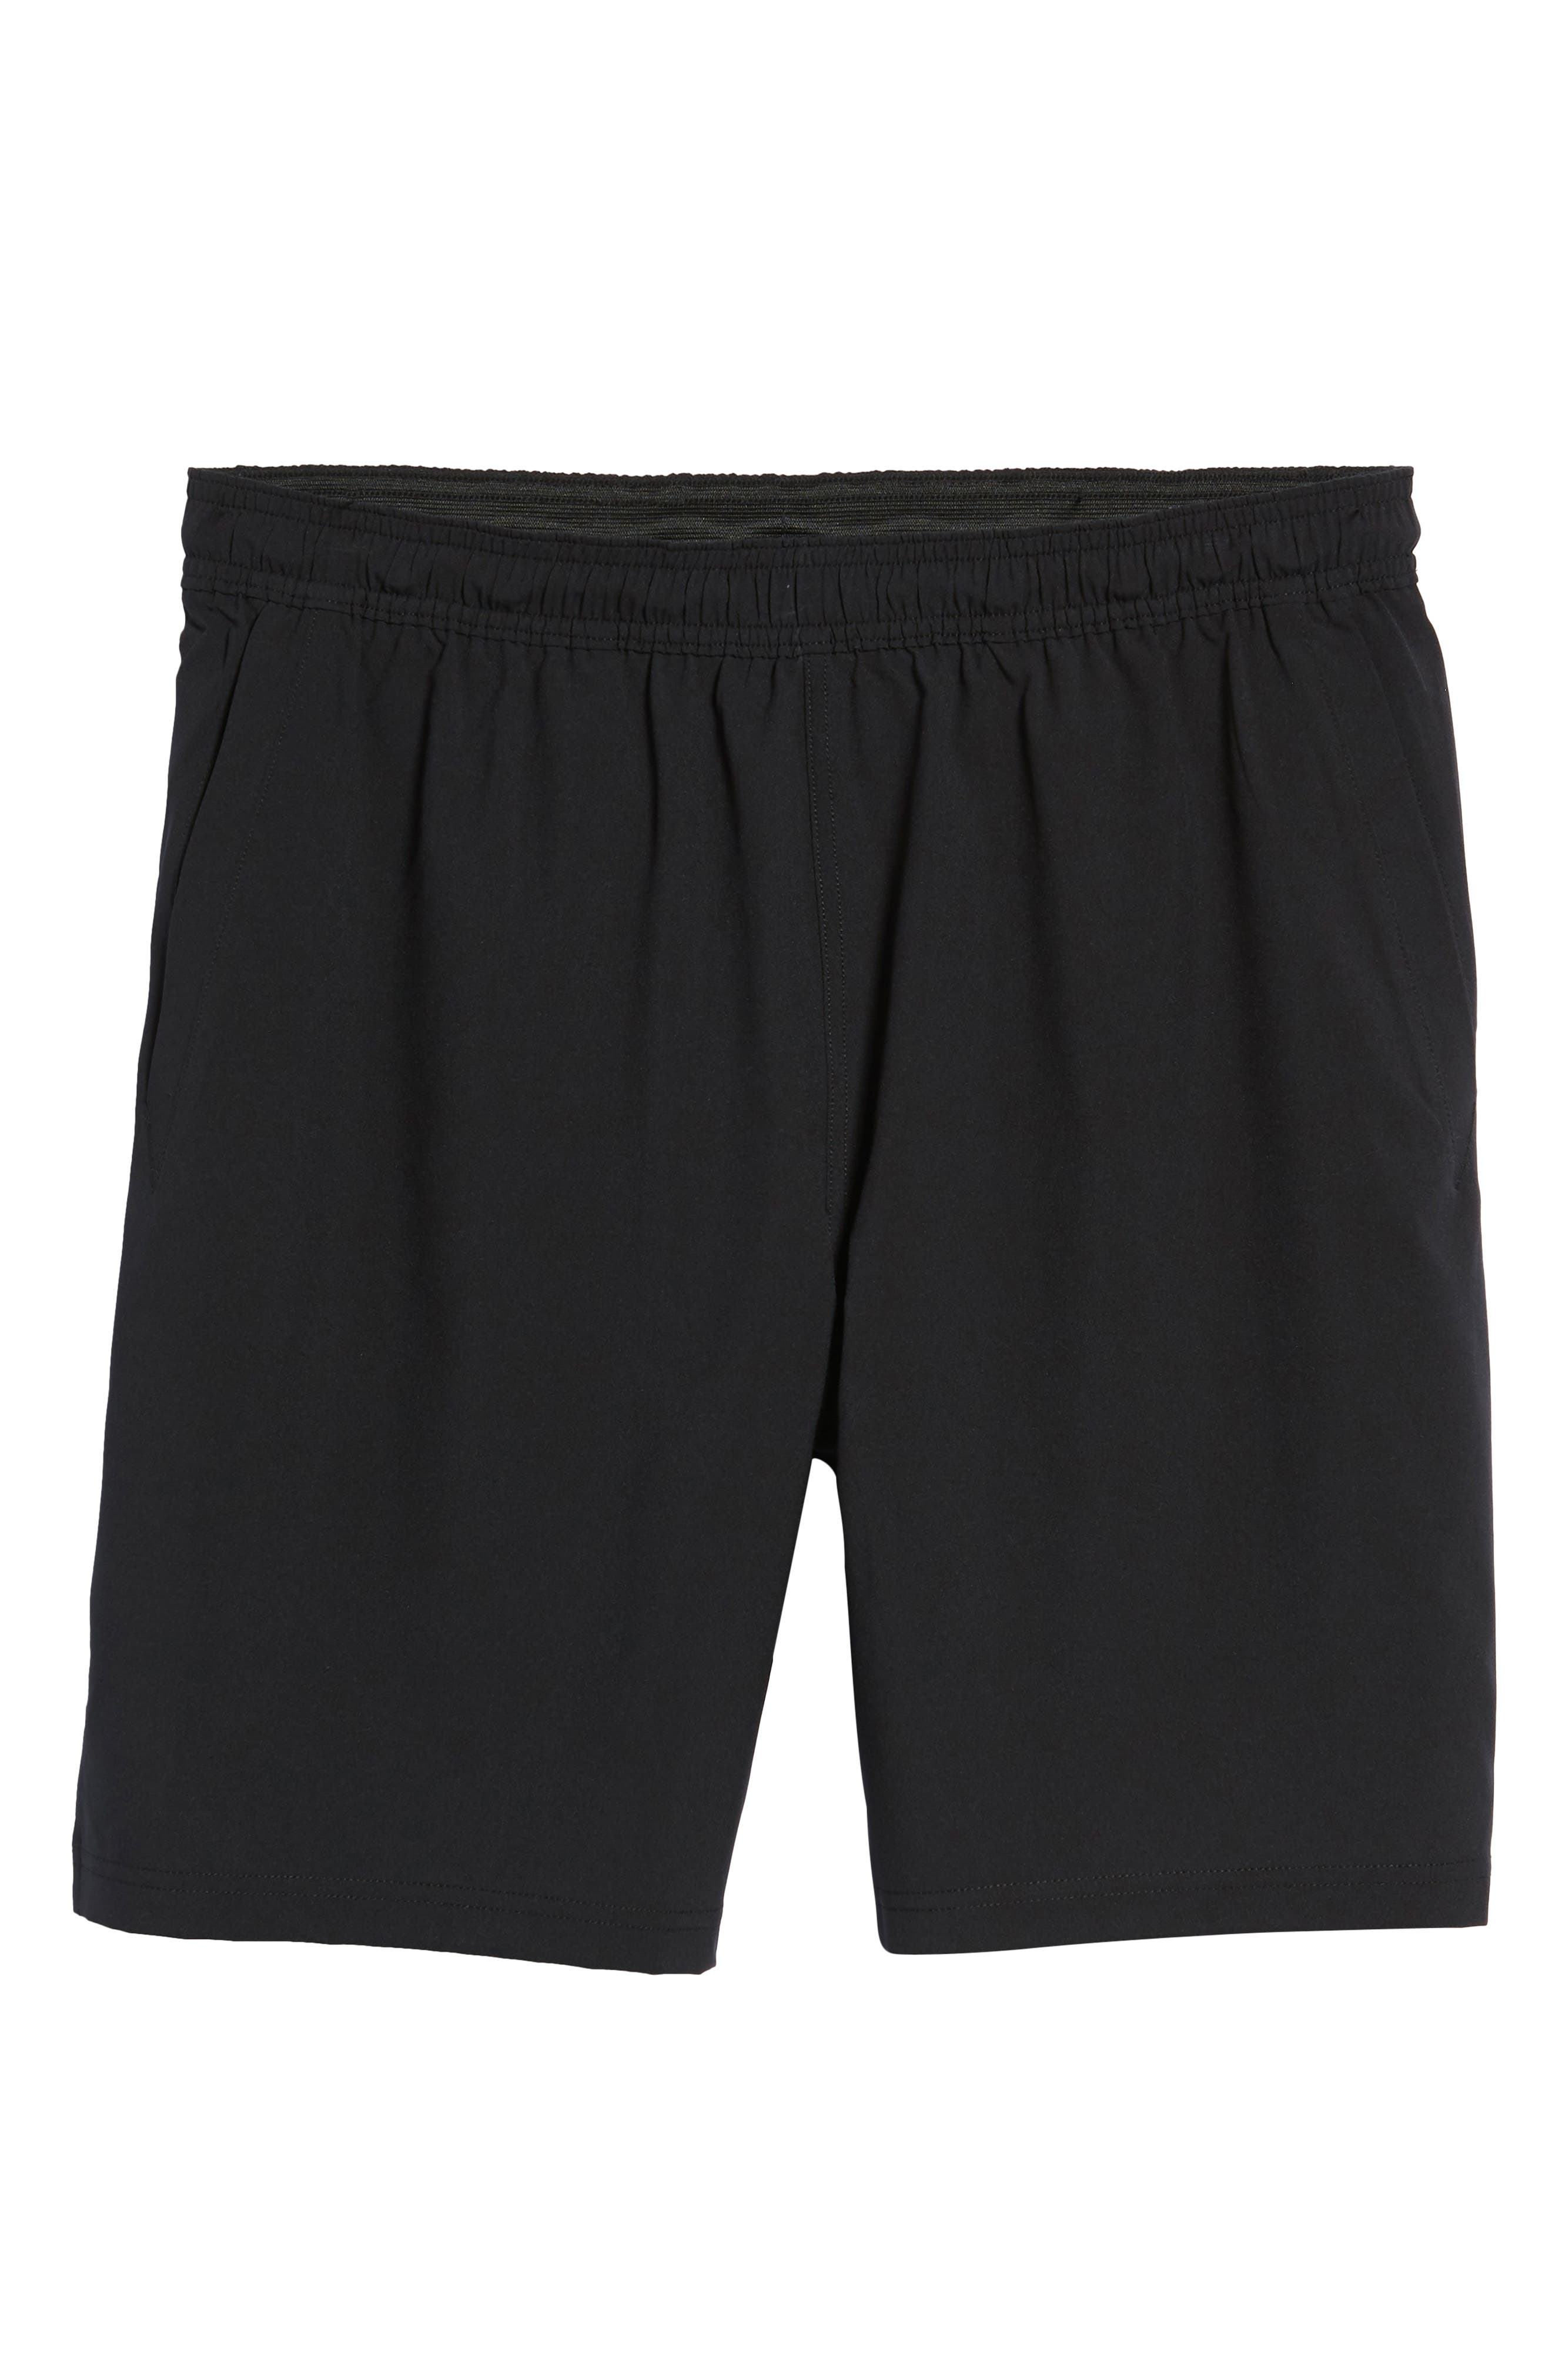 ZELLA, Graphite Perforated Shorts, Alternate thumbnail 7, color, BLACK